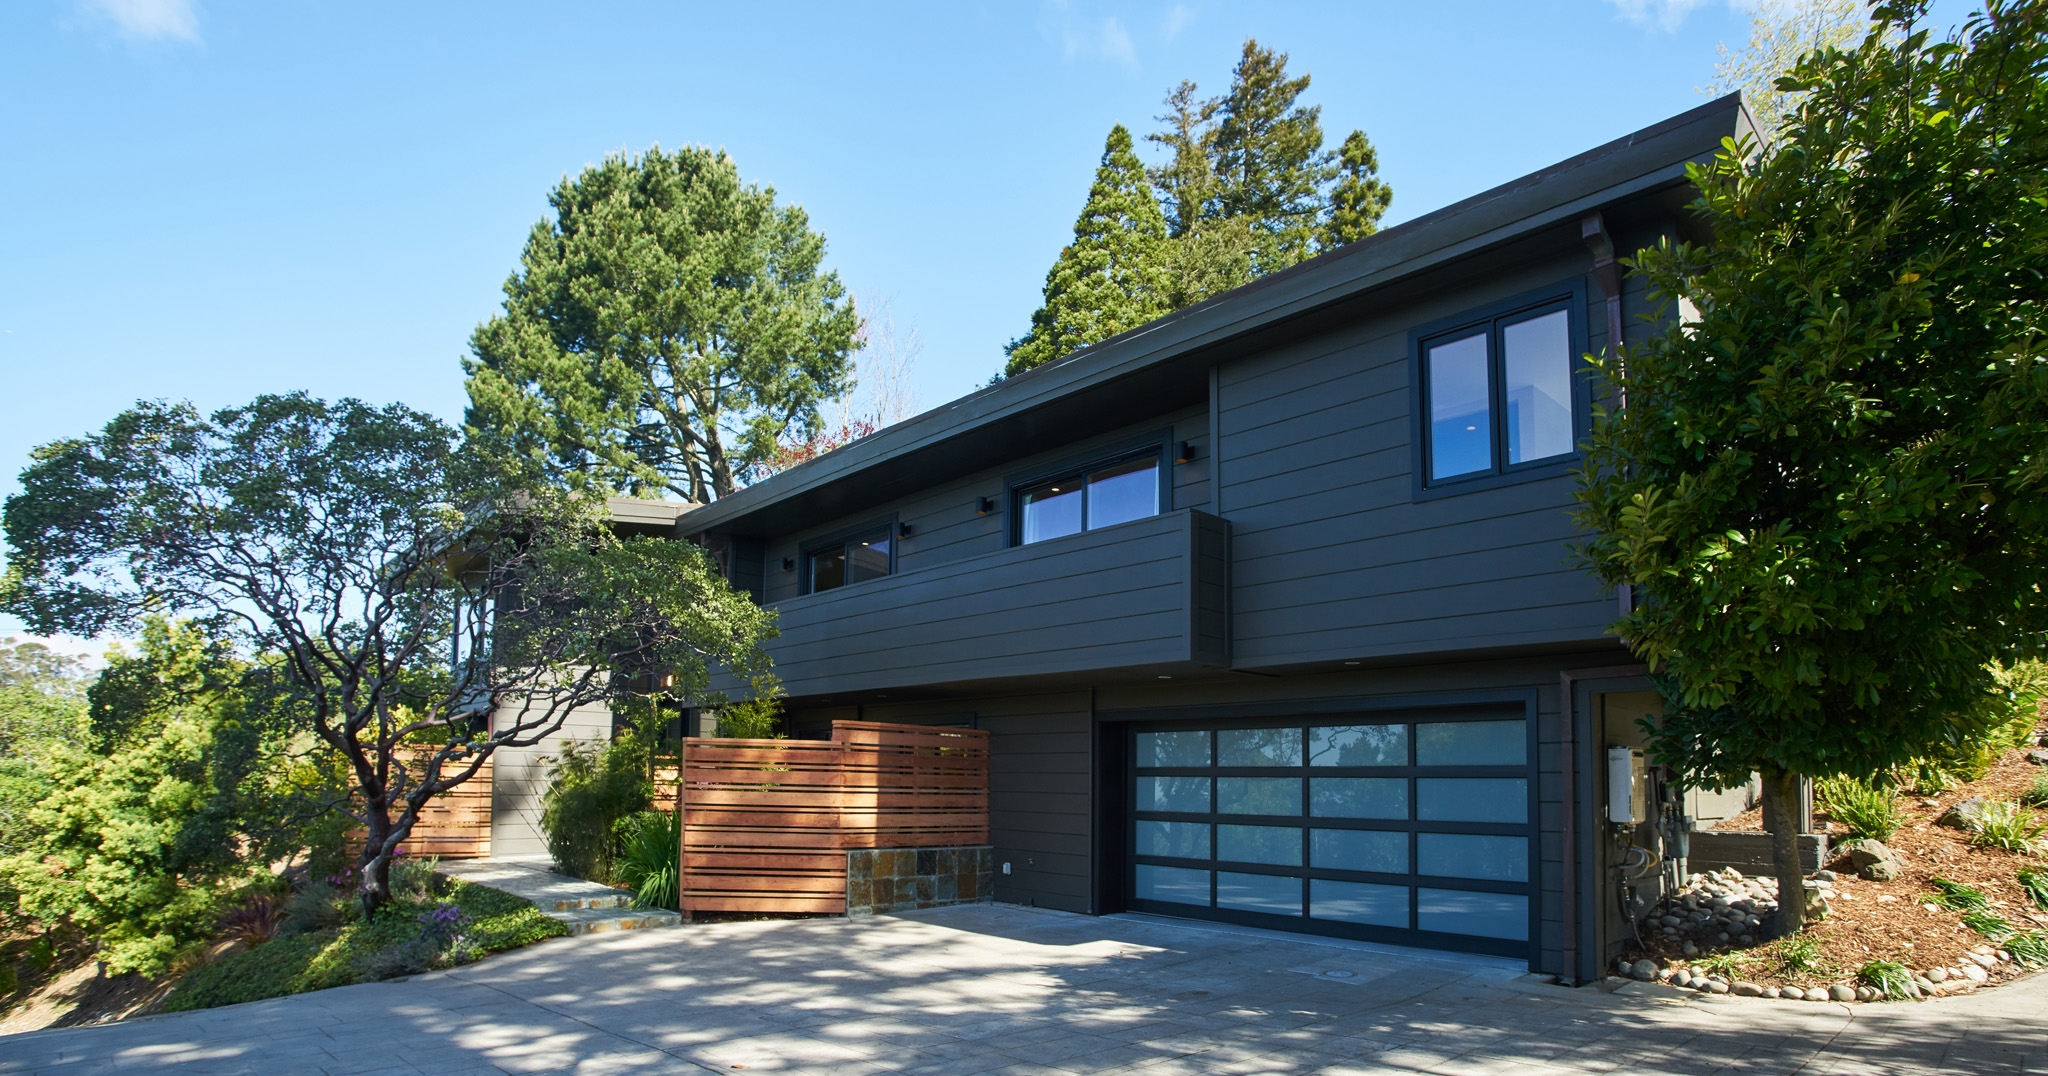 sold! 1097 creston rd - Berkeley, CA5 BR, 3.5 BAOffered at $2,600,000